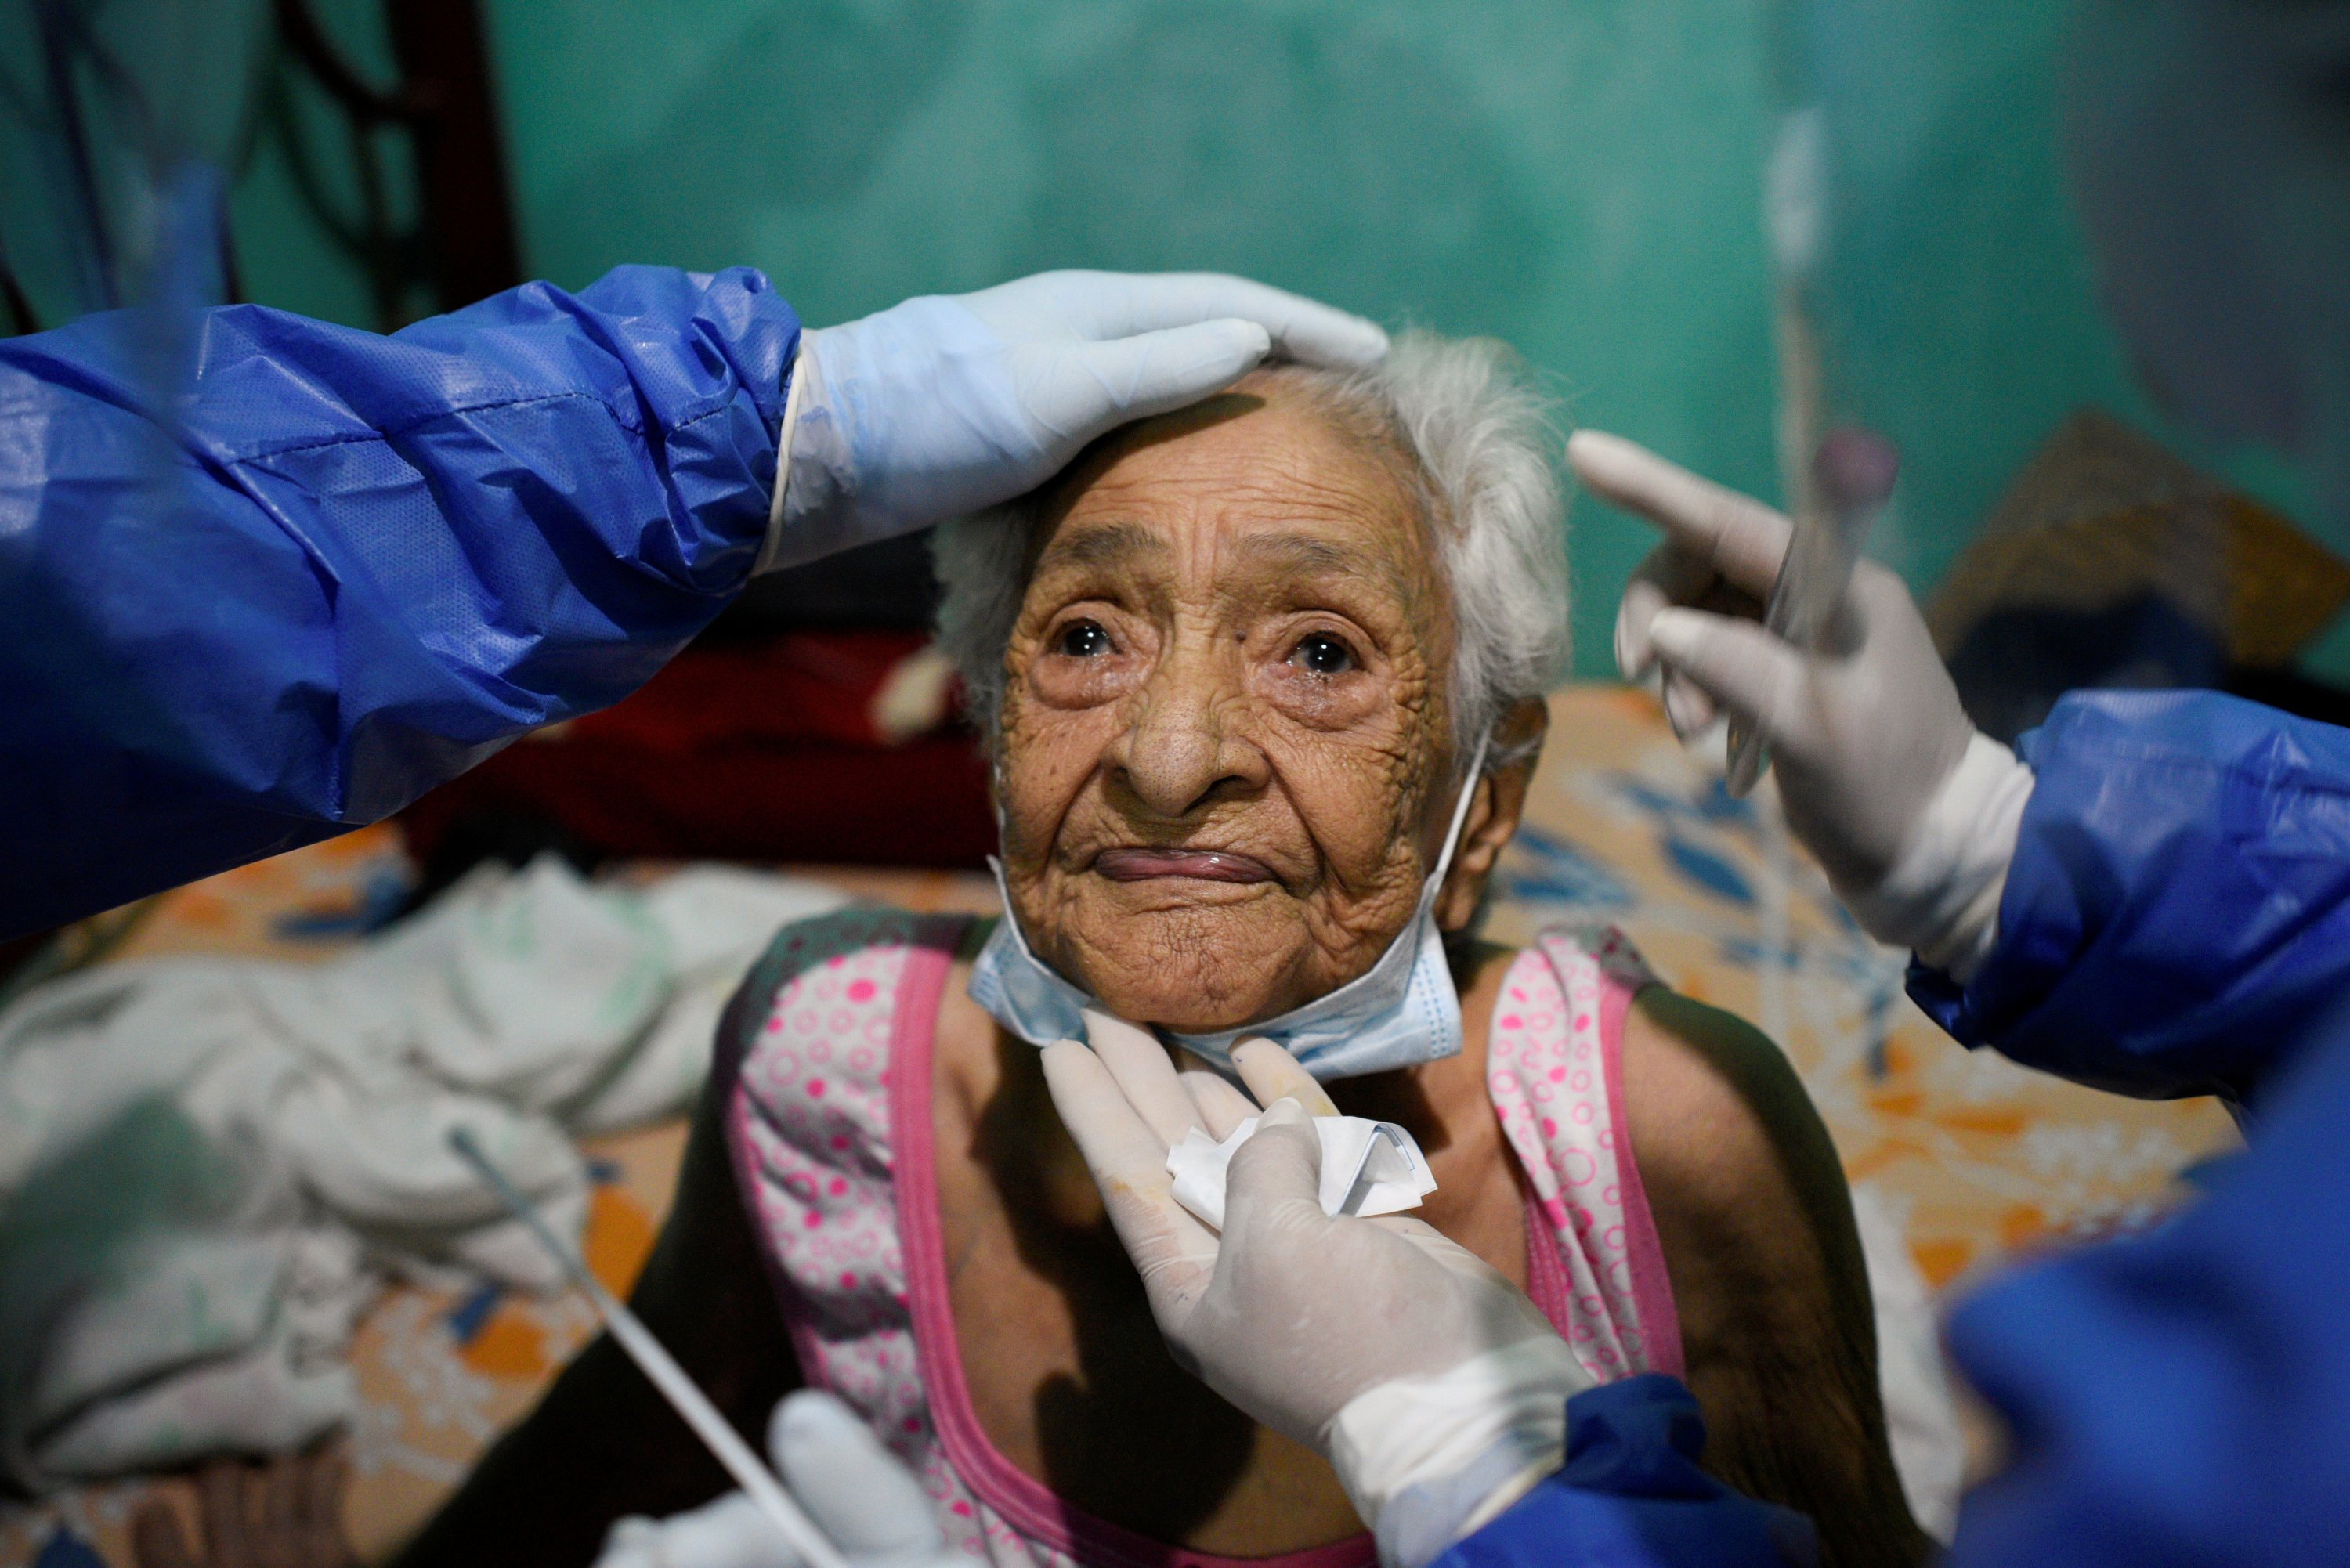 A 94-year-old woman prepares to have a sample taken by doctors from the Ecuadorian health ministry's rapid response team at her home in Guayaquil, Ecuador, April 29, 2020. (Reuters Photo)